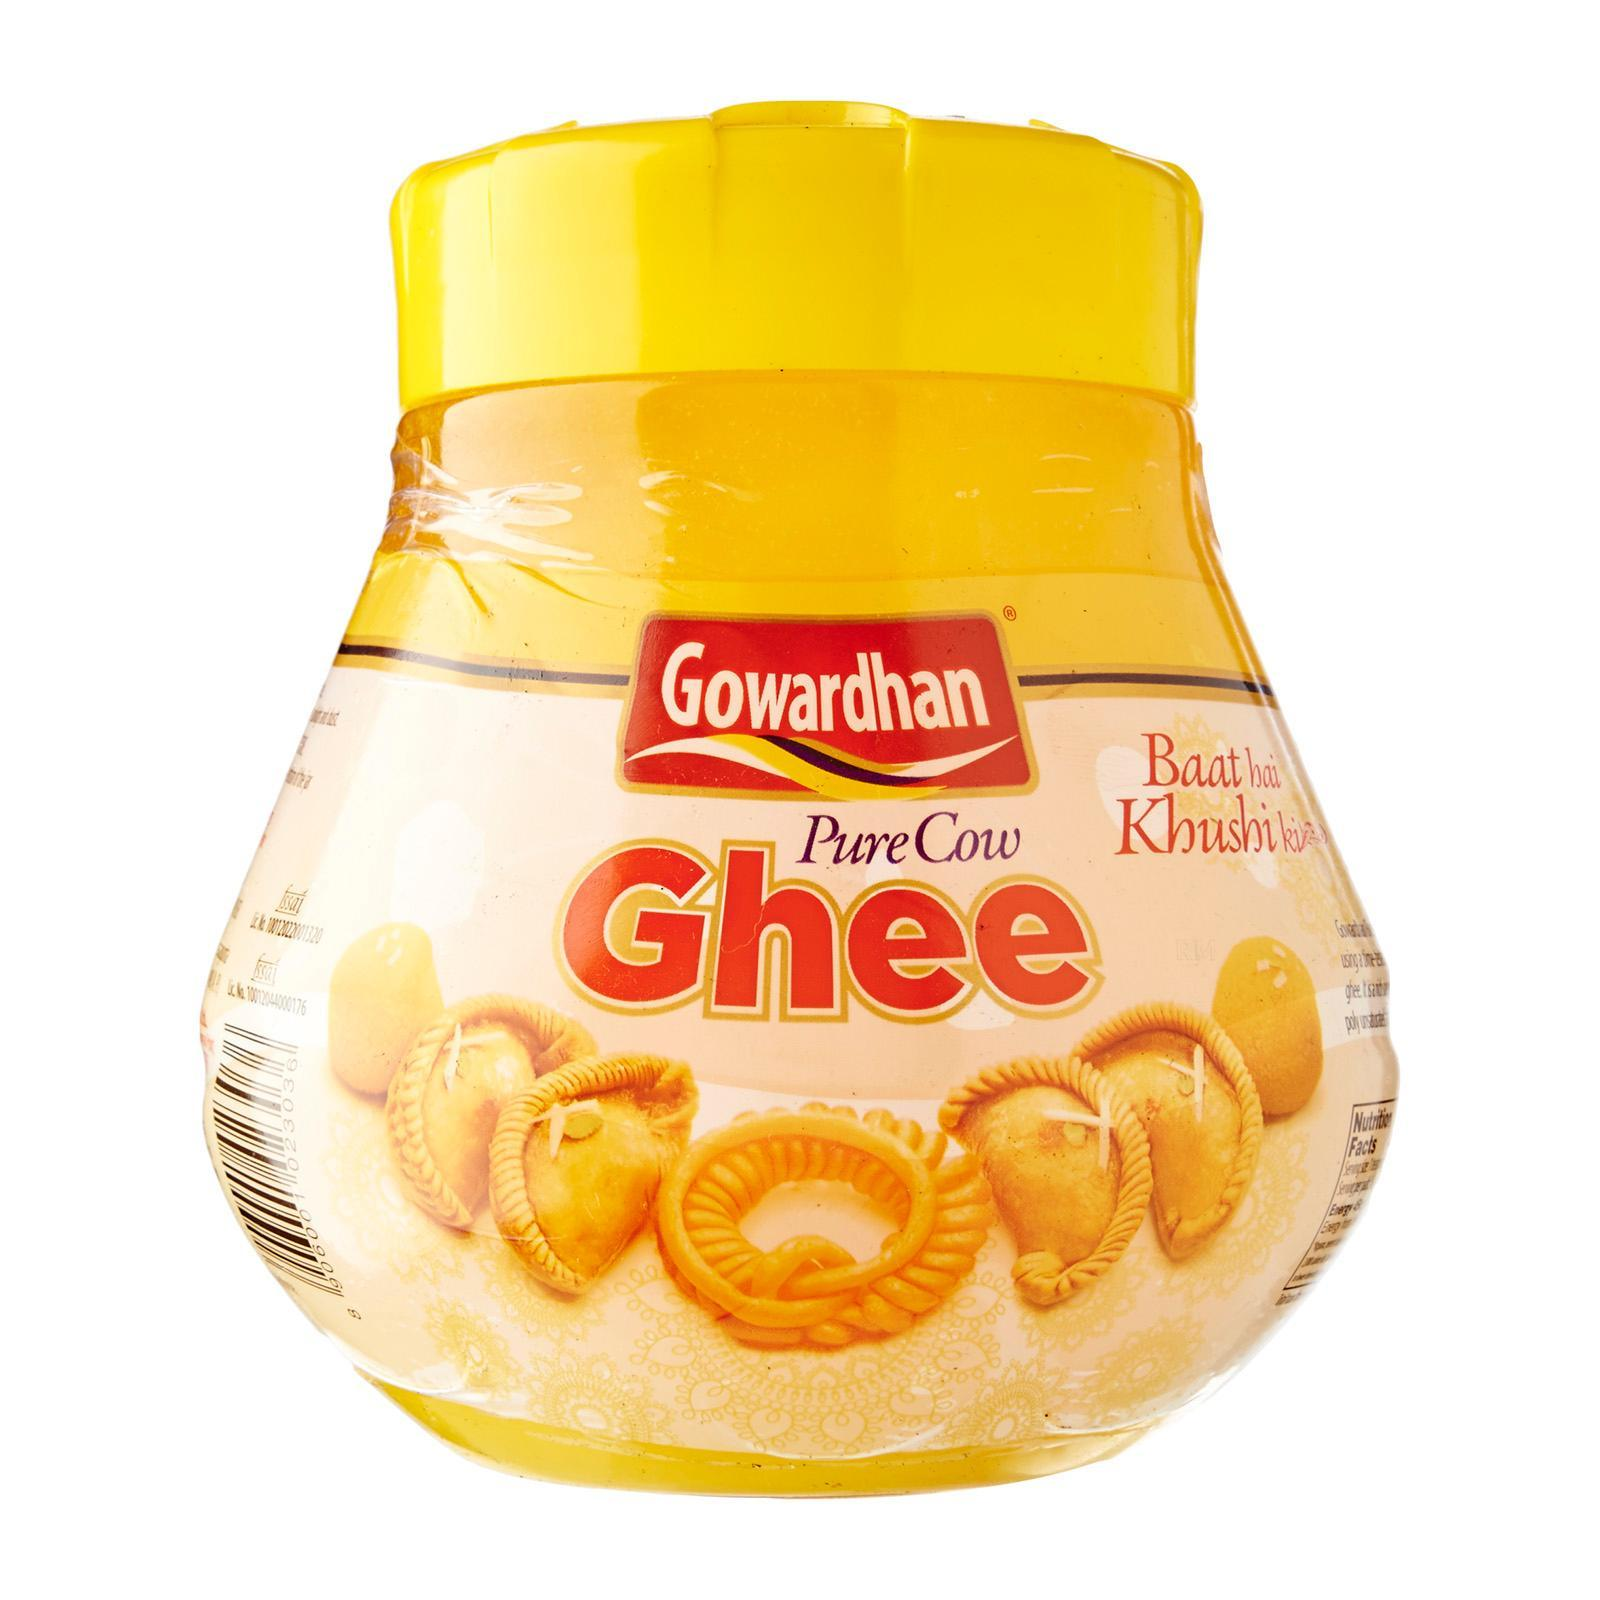 Gowardhan Ghee 1l, Traditional Home Made Ghee, Pure And Healthy, Indian Cuisine. By Merlion Mart.